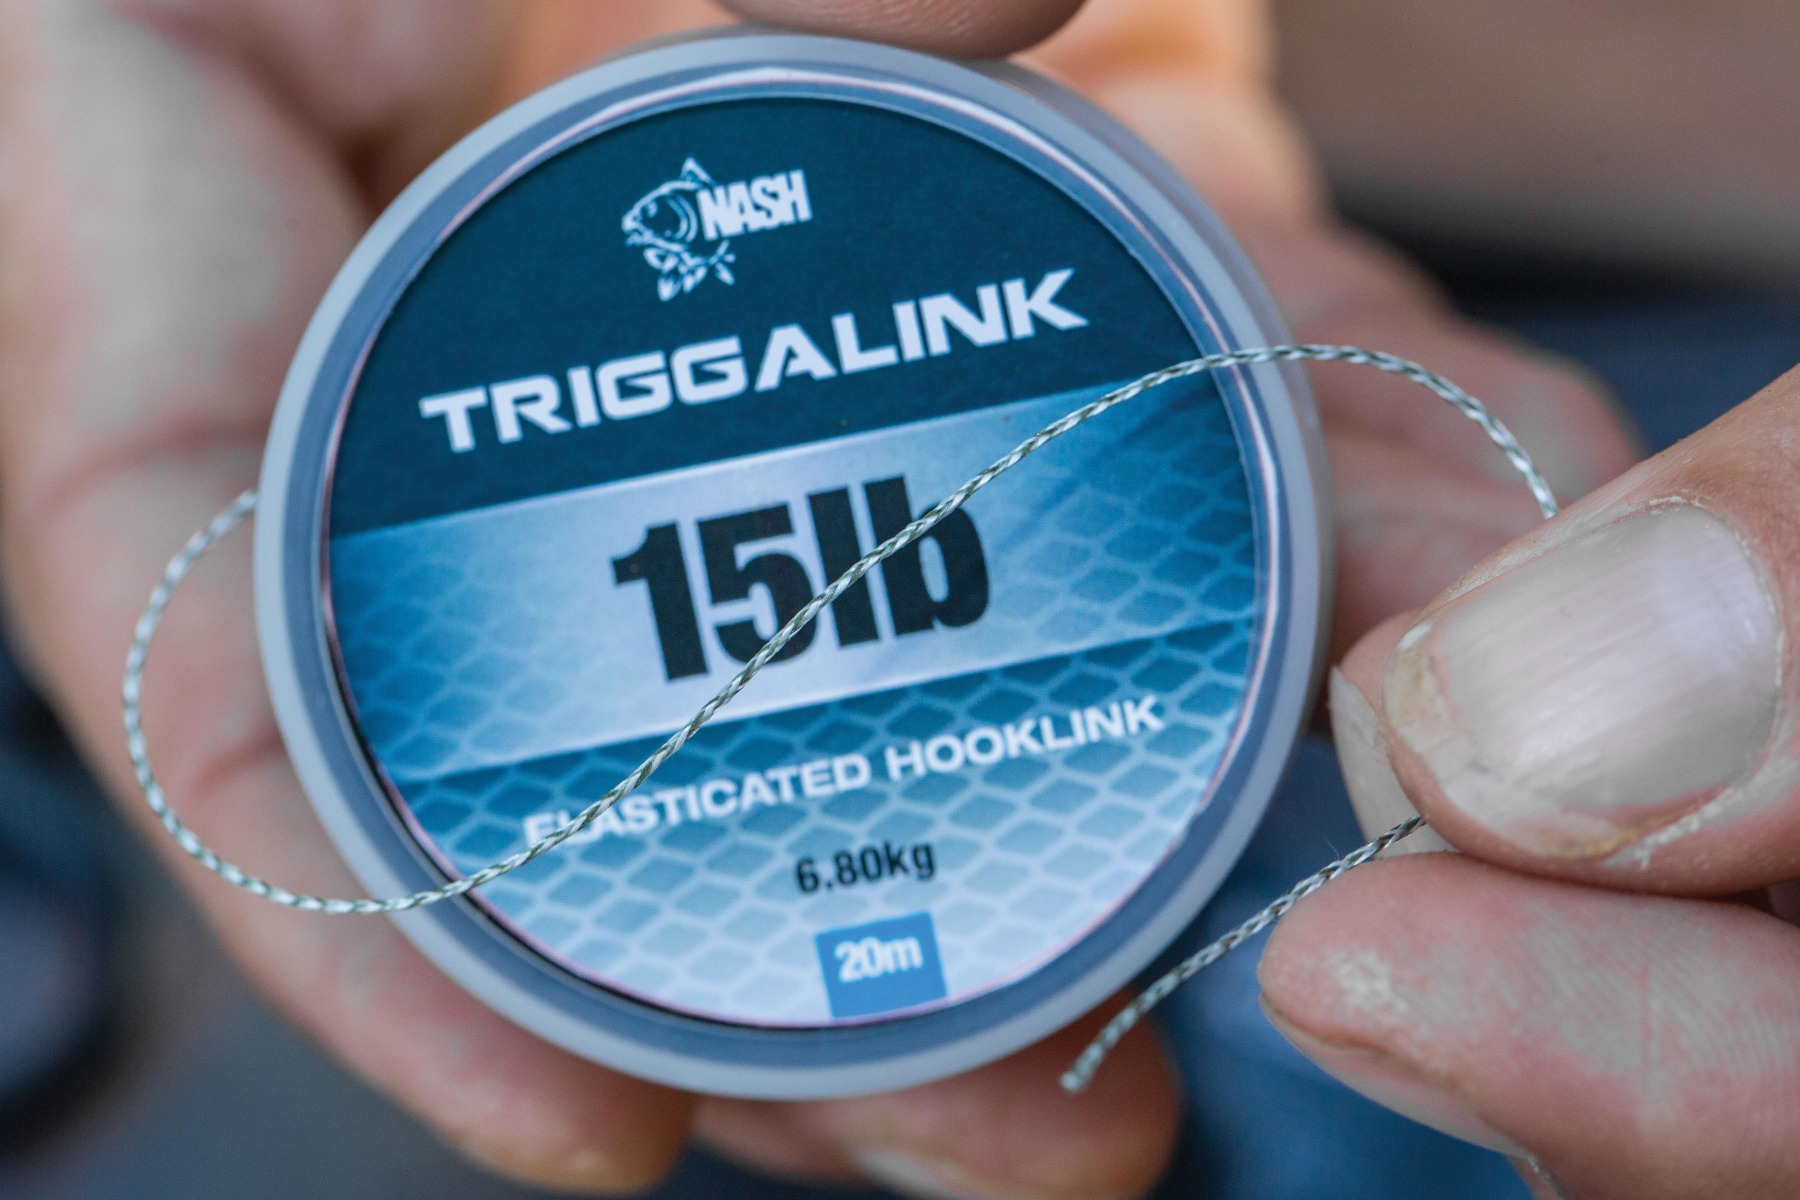 Onto the Triggalink… Start by cutting off a 10in length.